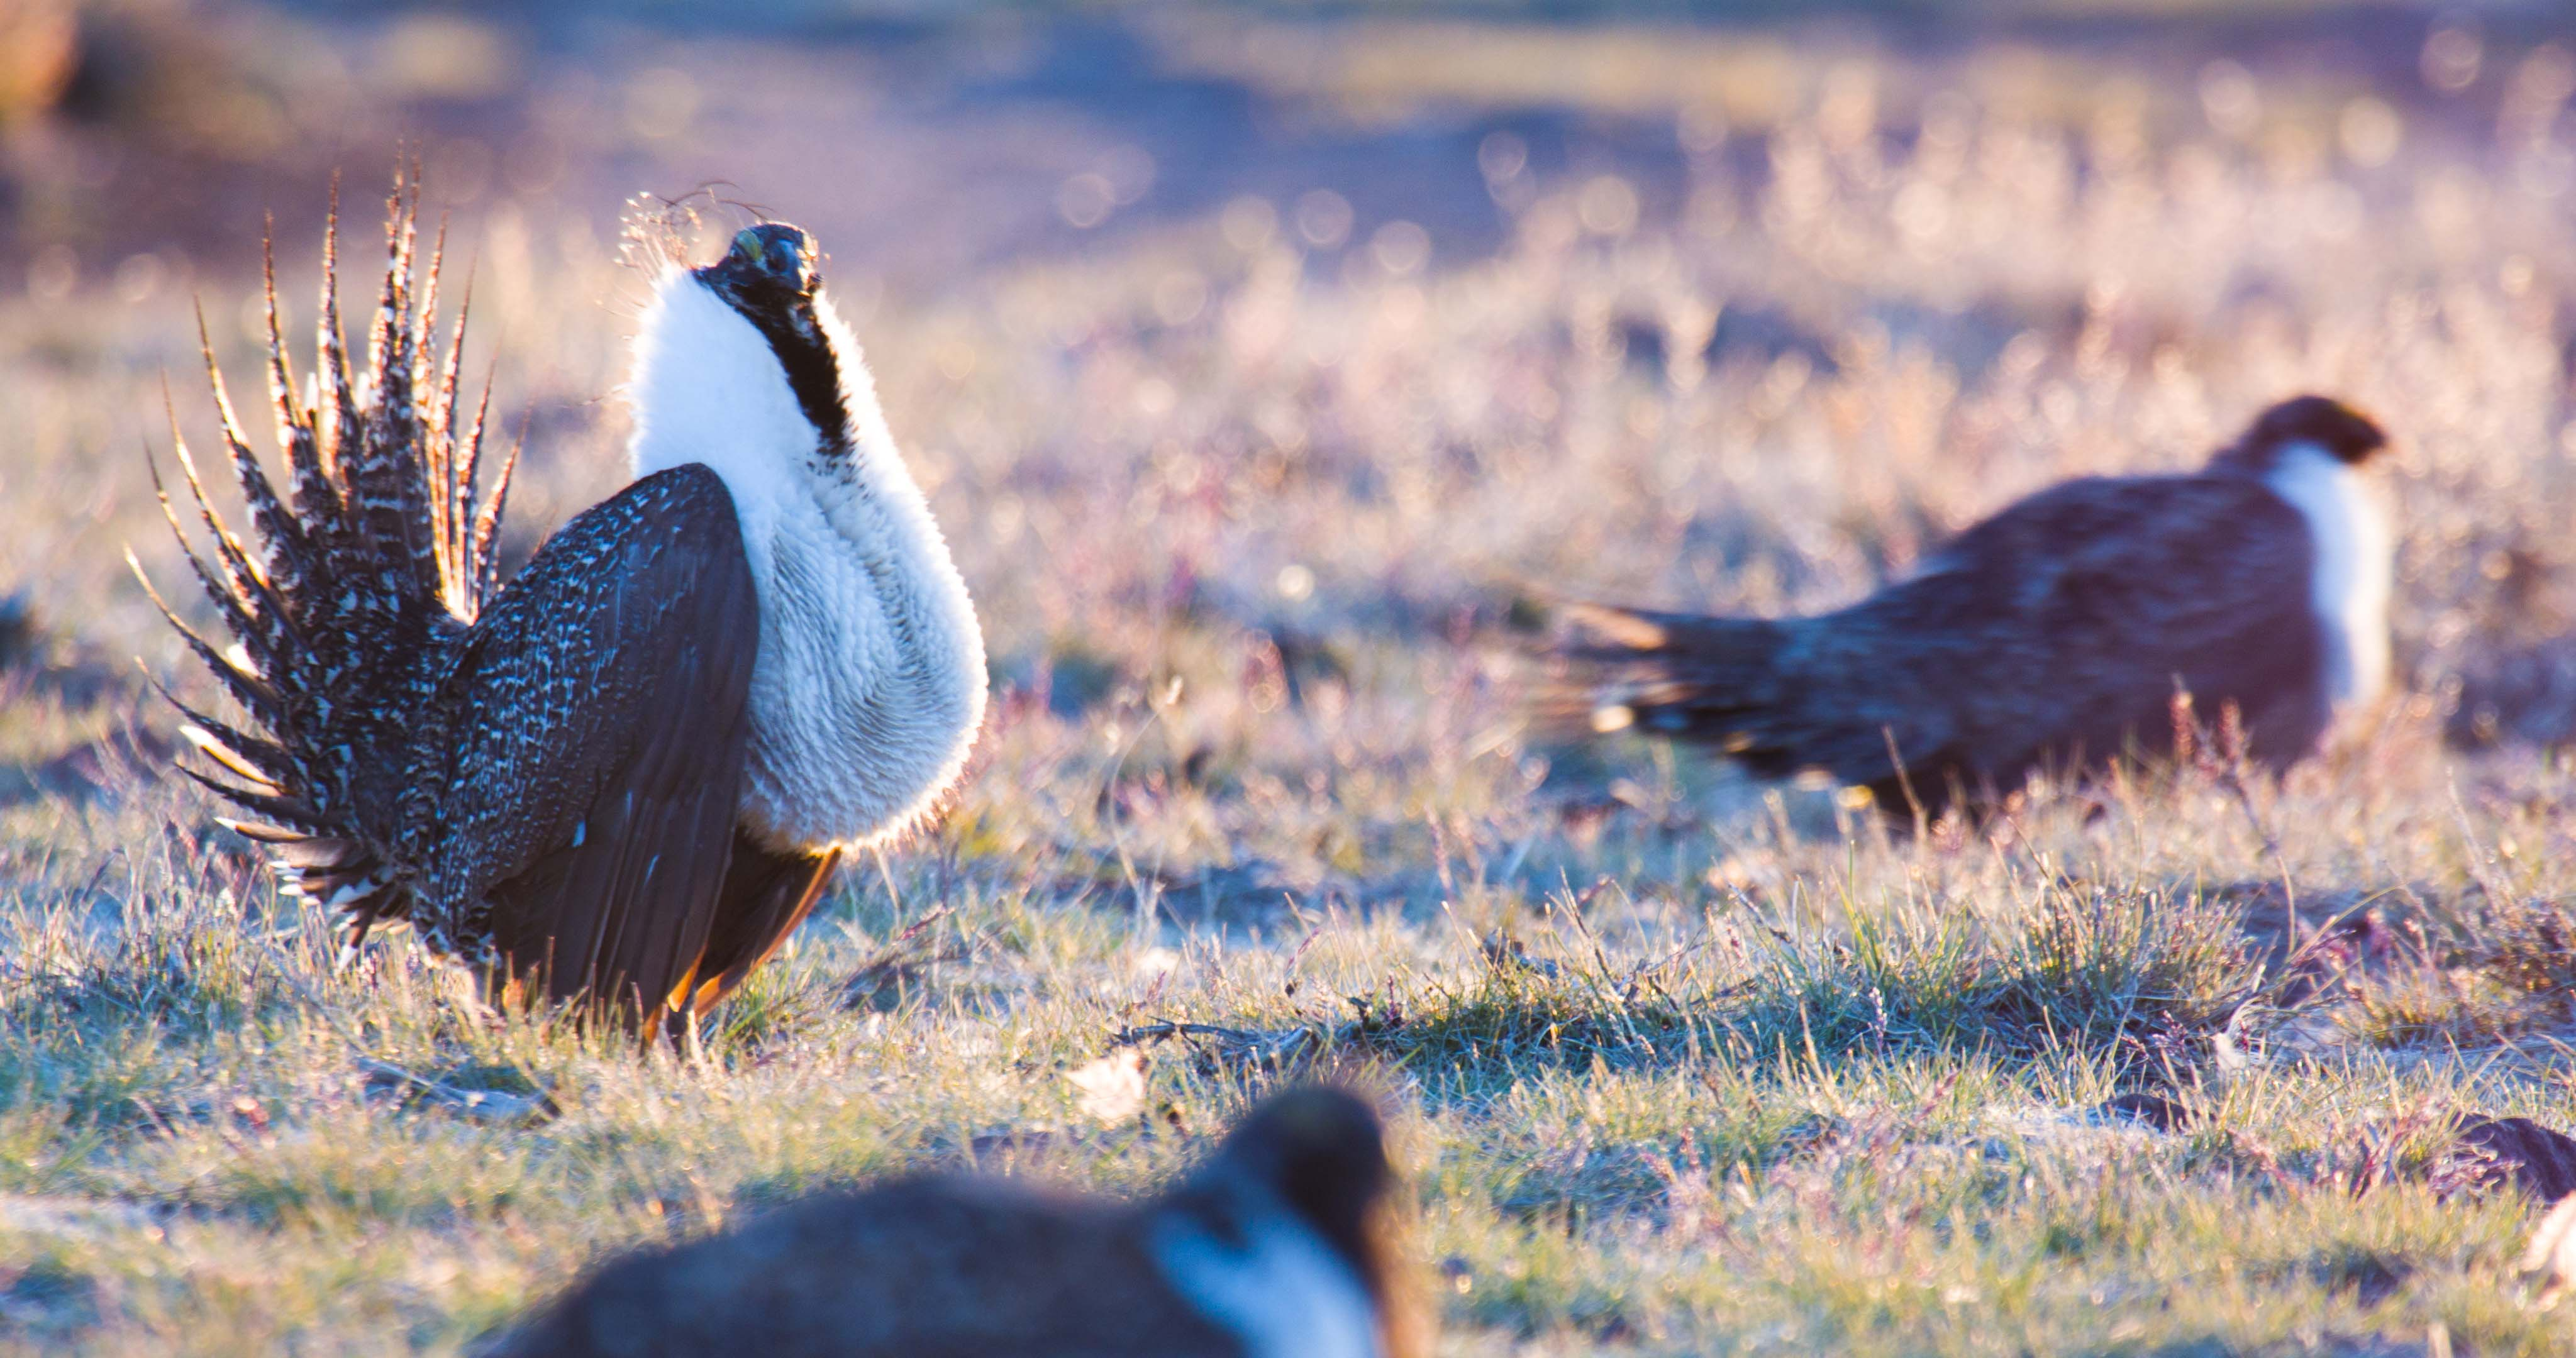 Birdbrained? Trump Admin Attacks 'Historic' 2015 Sage Grouse Plan, Enviro Groups File FOIAs